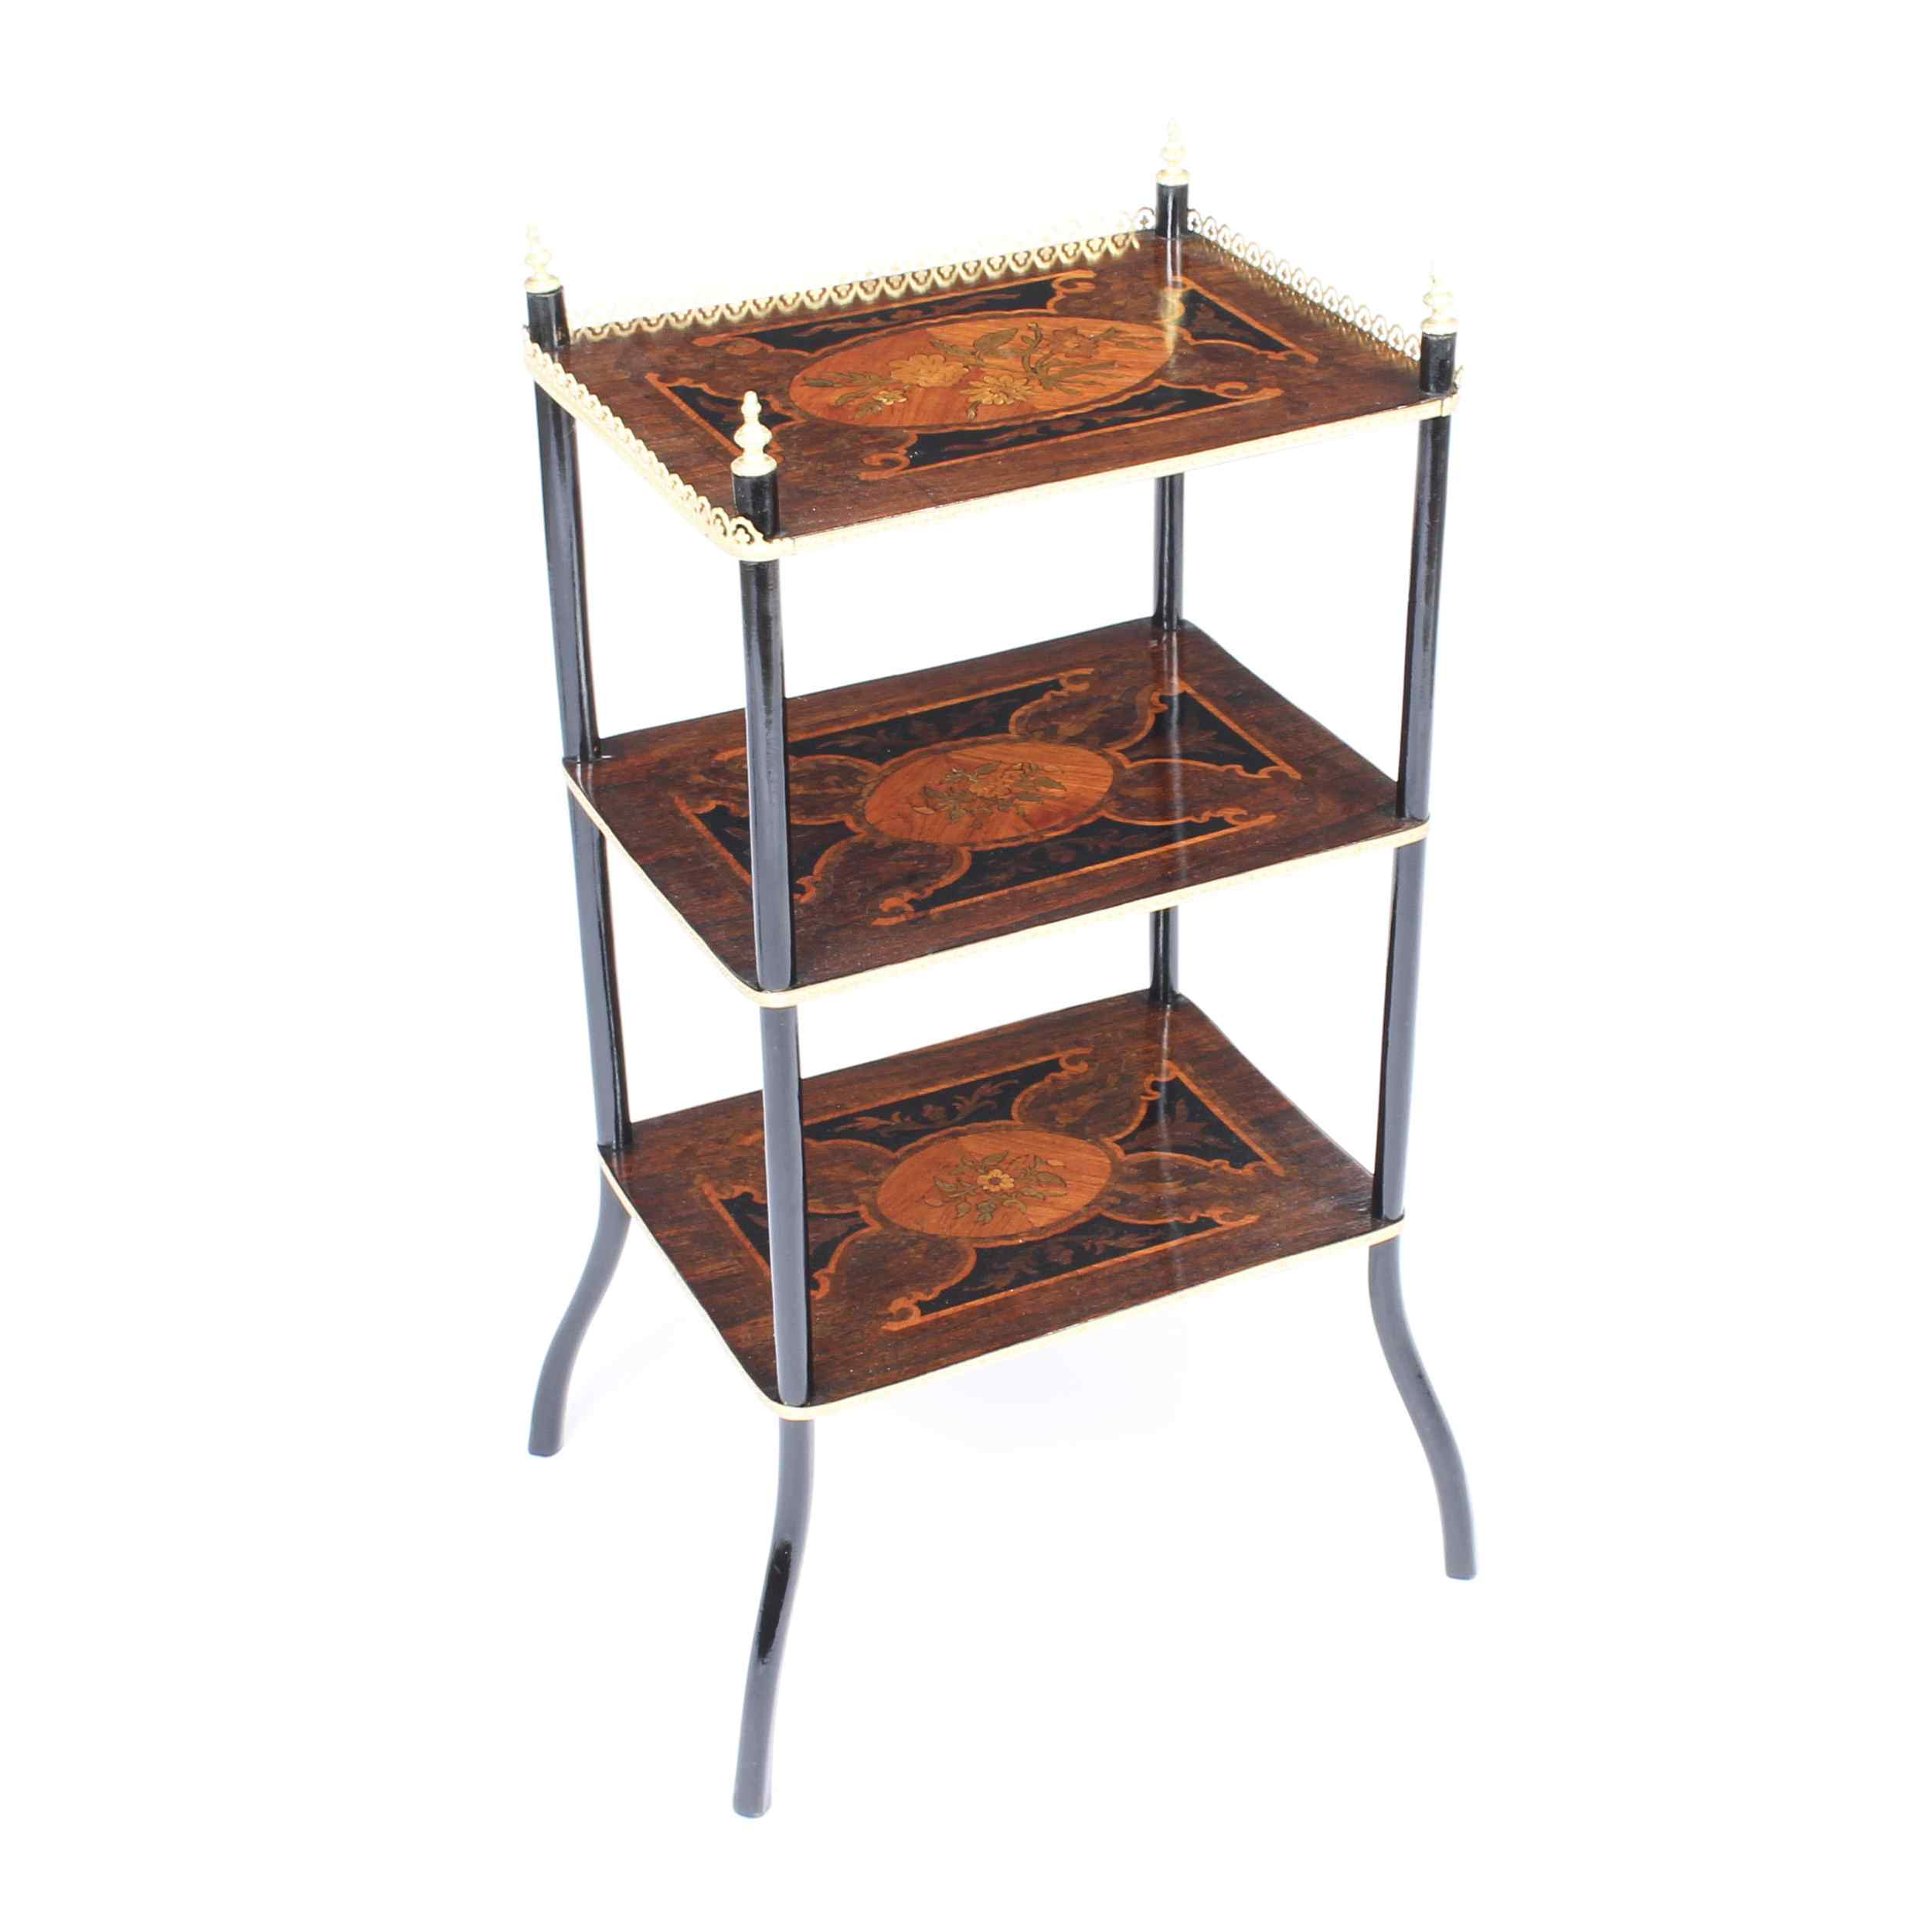 Antique French Marquetry & Ormolu Three-tier Etagere Table